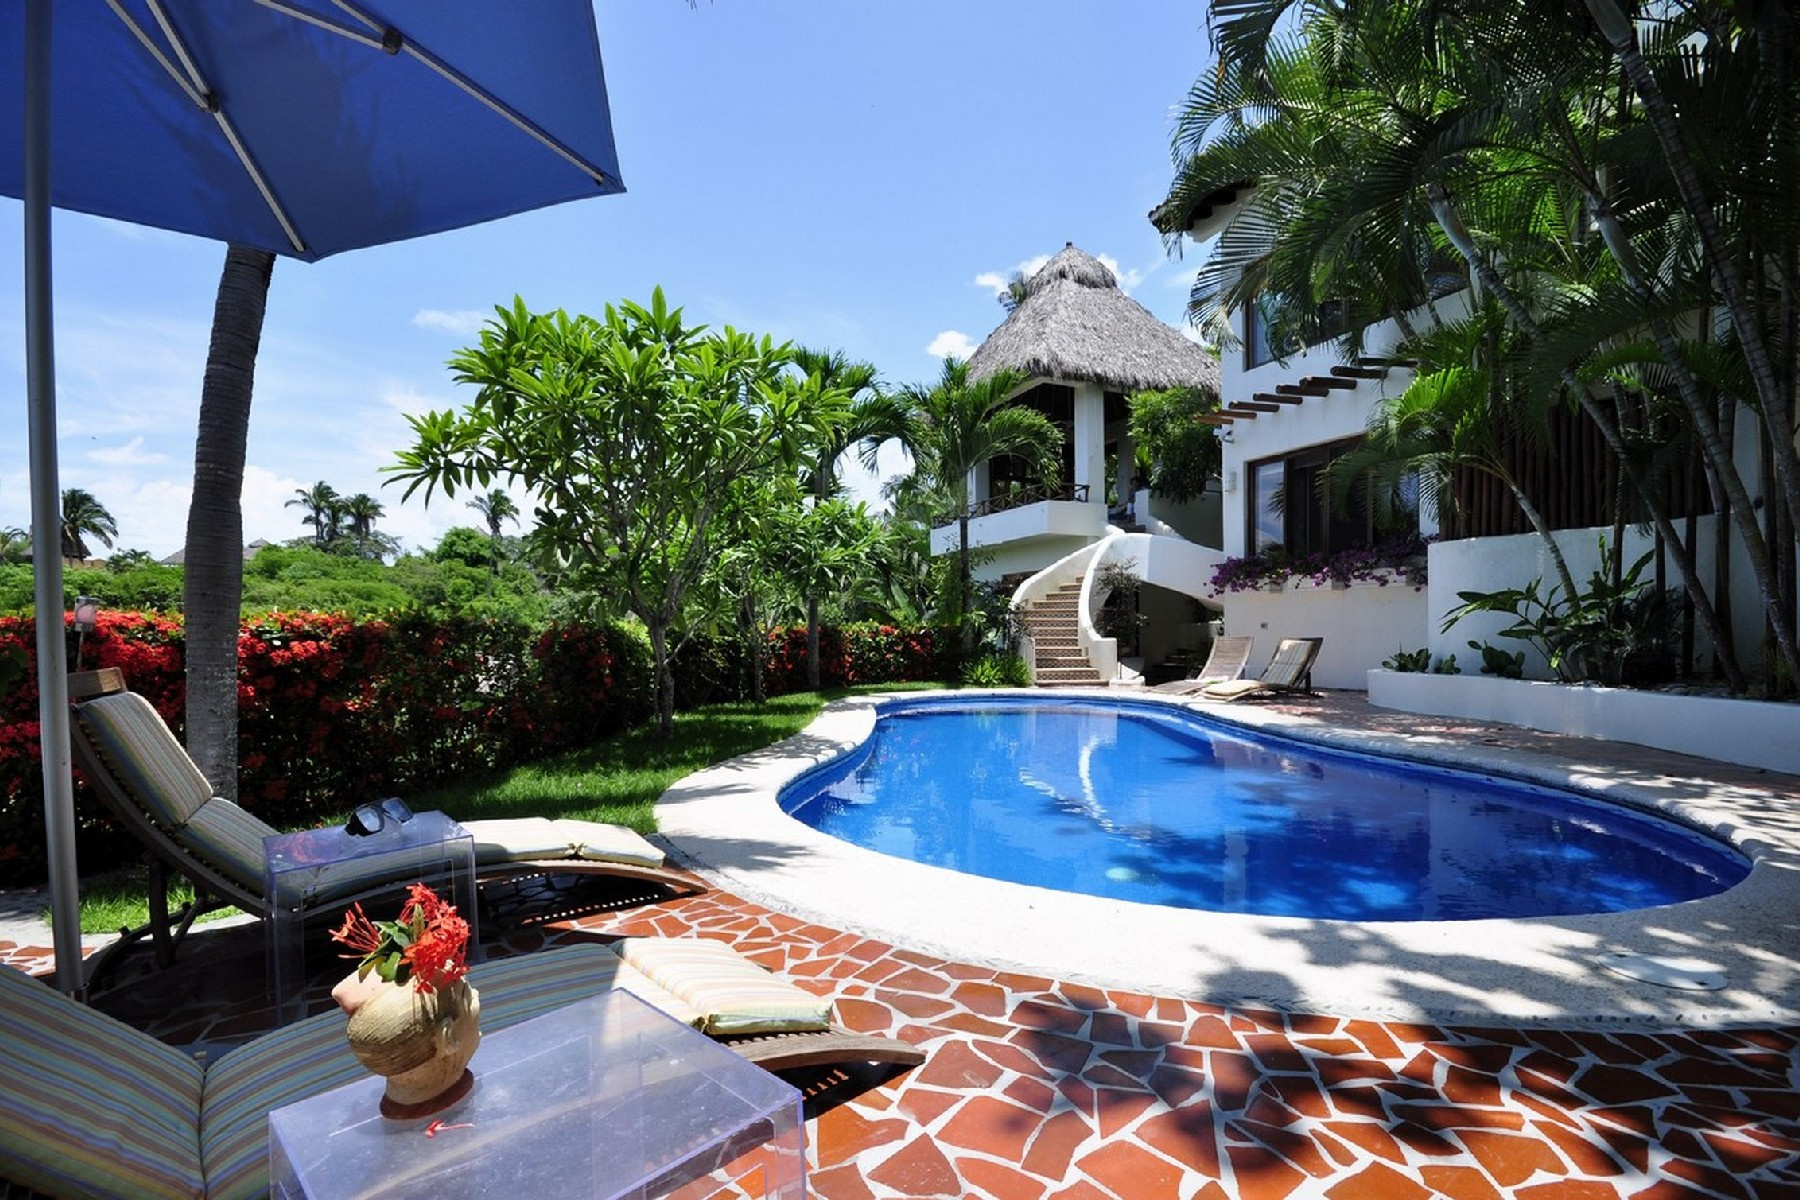 Single Family Home for Sale at Casa Flores, Sayulita, Puerto Vallarta Calle Libertad 50 Sayulita, 63734 Mexico